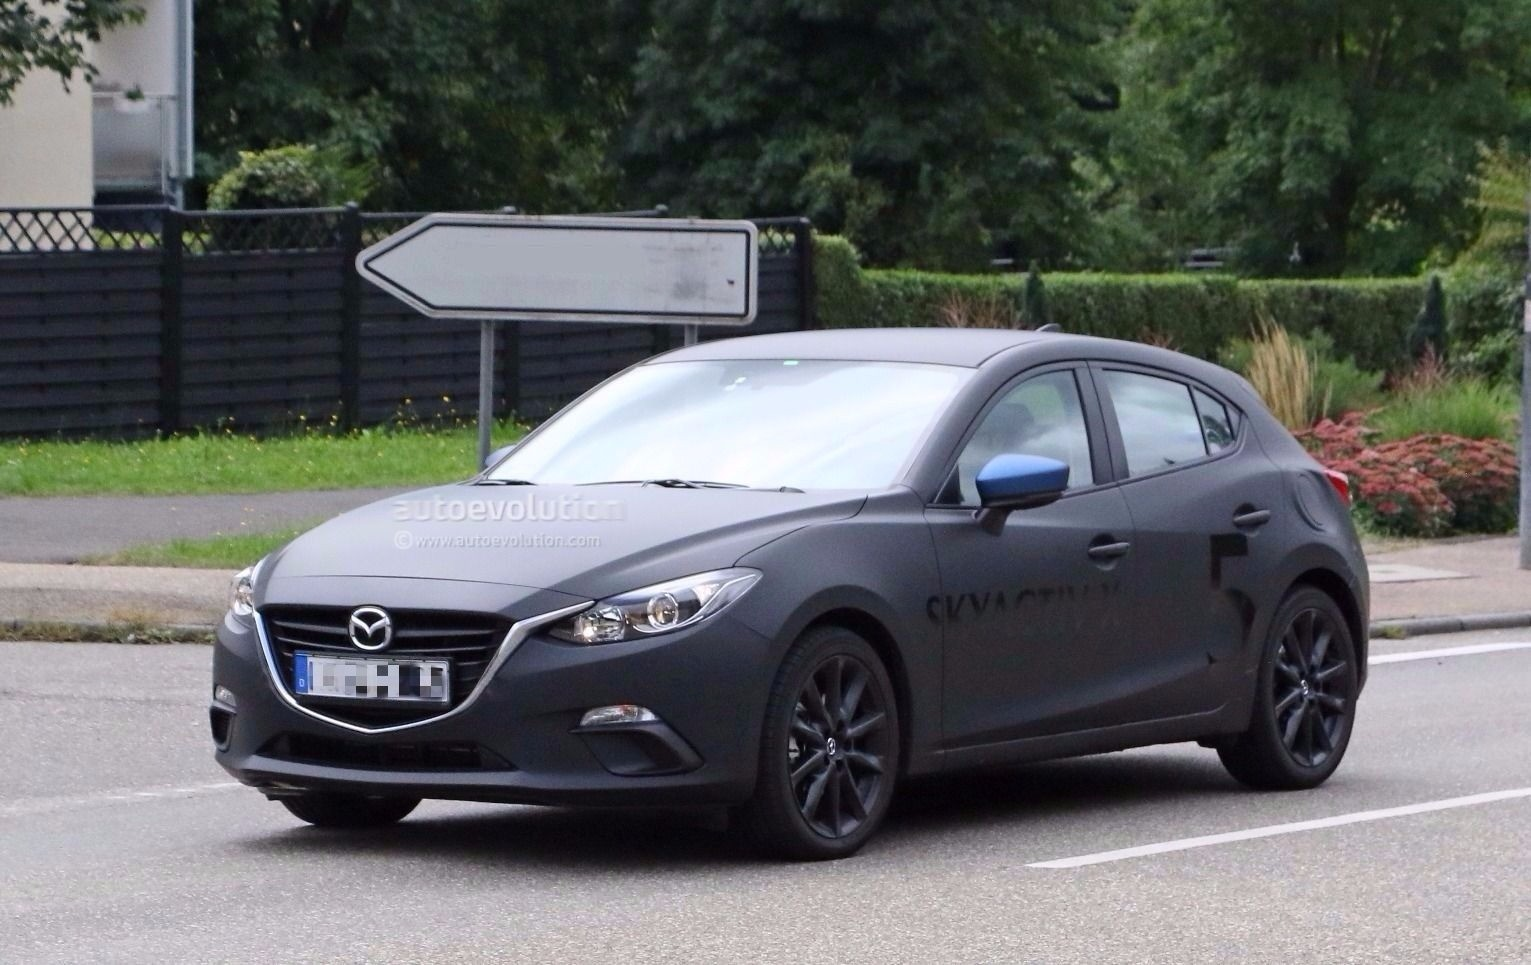 Mazda 3 Next Generation >> 2019 Mazda3 Teaser Video Shows Hatchback Body Style, Looks Ready For Production - autoevolution